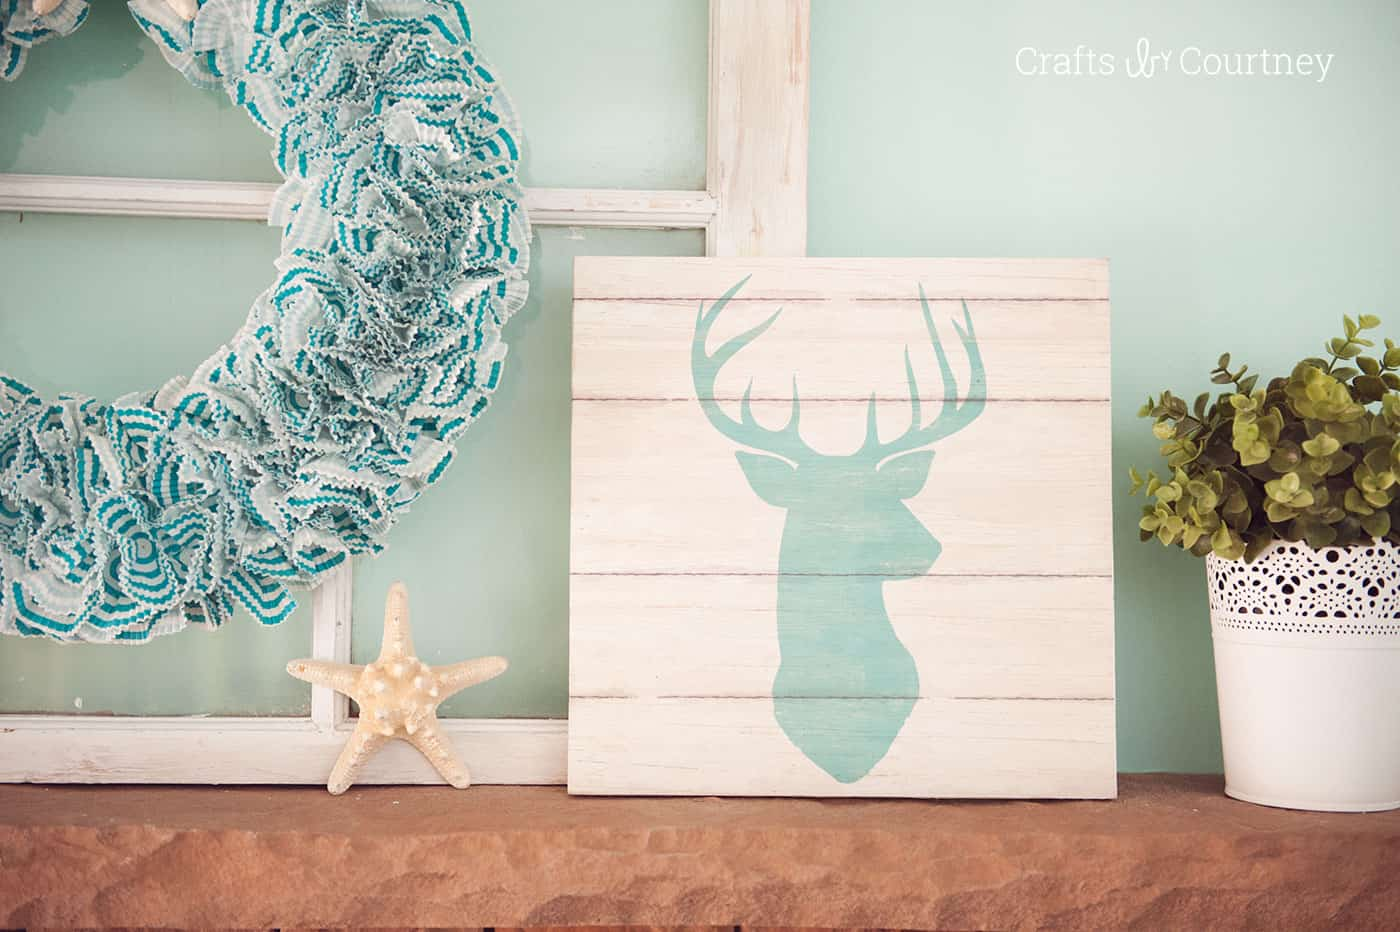 Scrapbook paper diy - Use Cool Scrapbook Paper And Cut Pieces Of Wood To Make Fabulous Diy Wall Art In